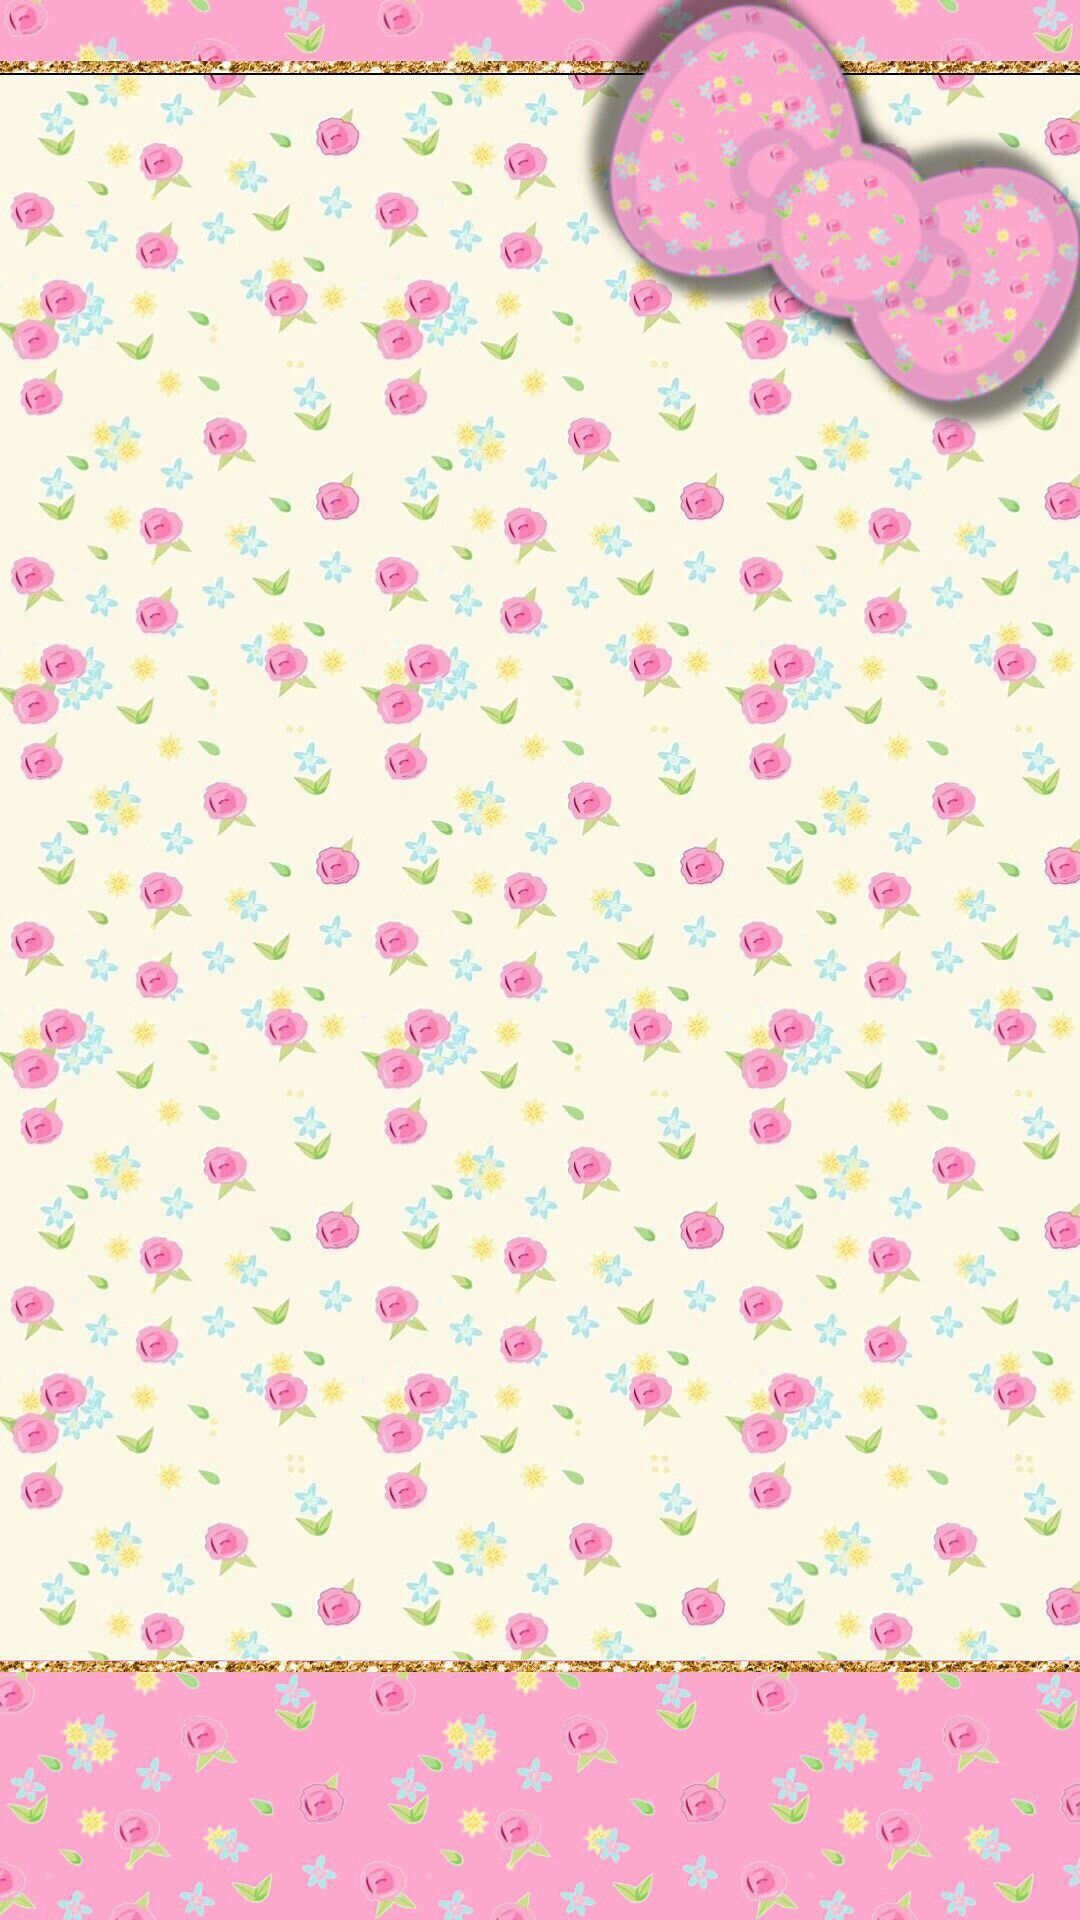 Pin By Angelmom4 On More Wallz Ii In 2019 Hello Kitty Backgrounds